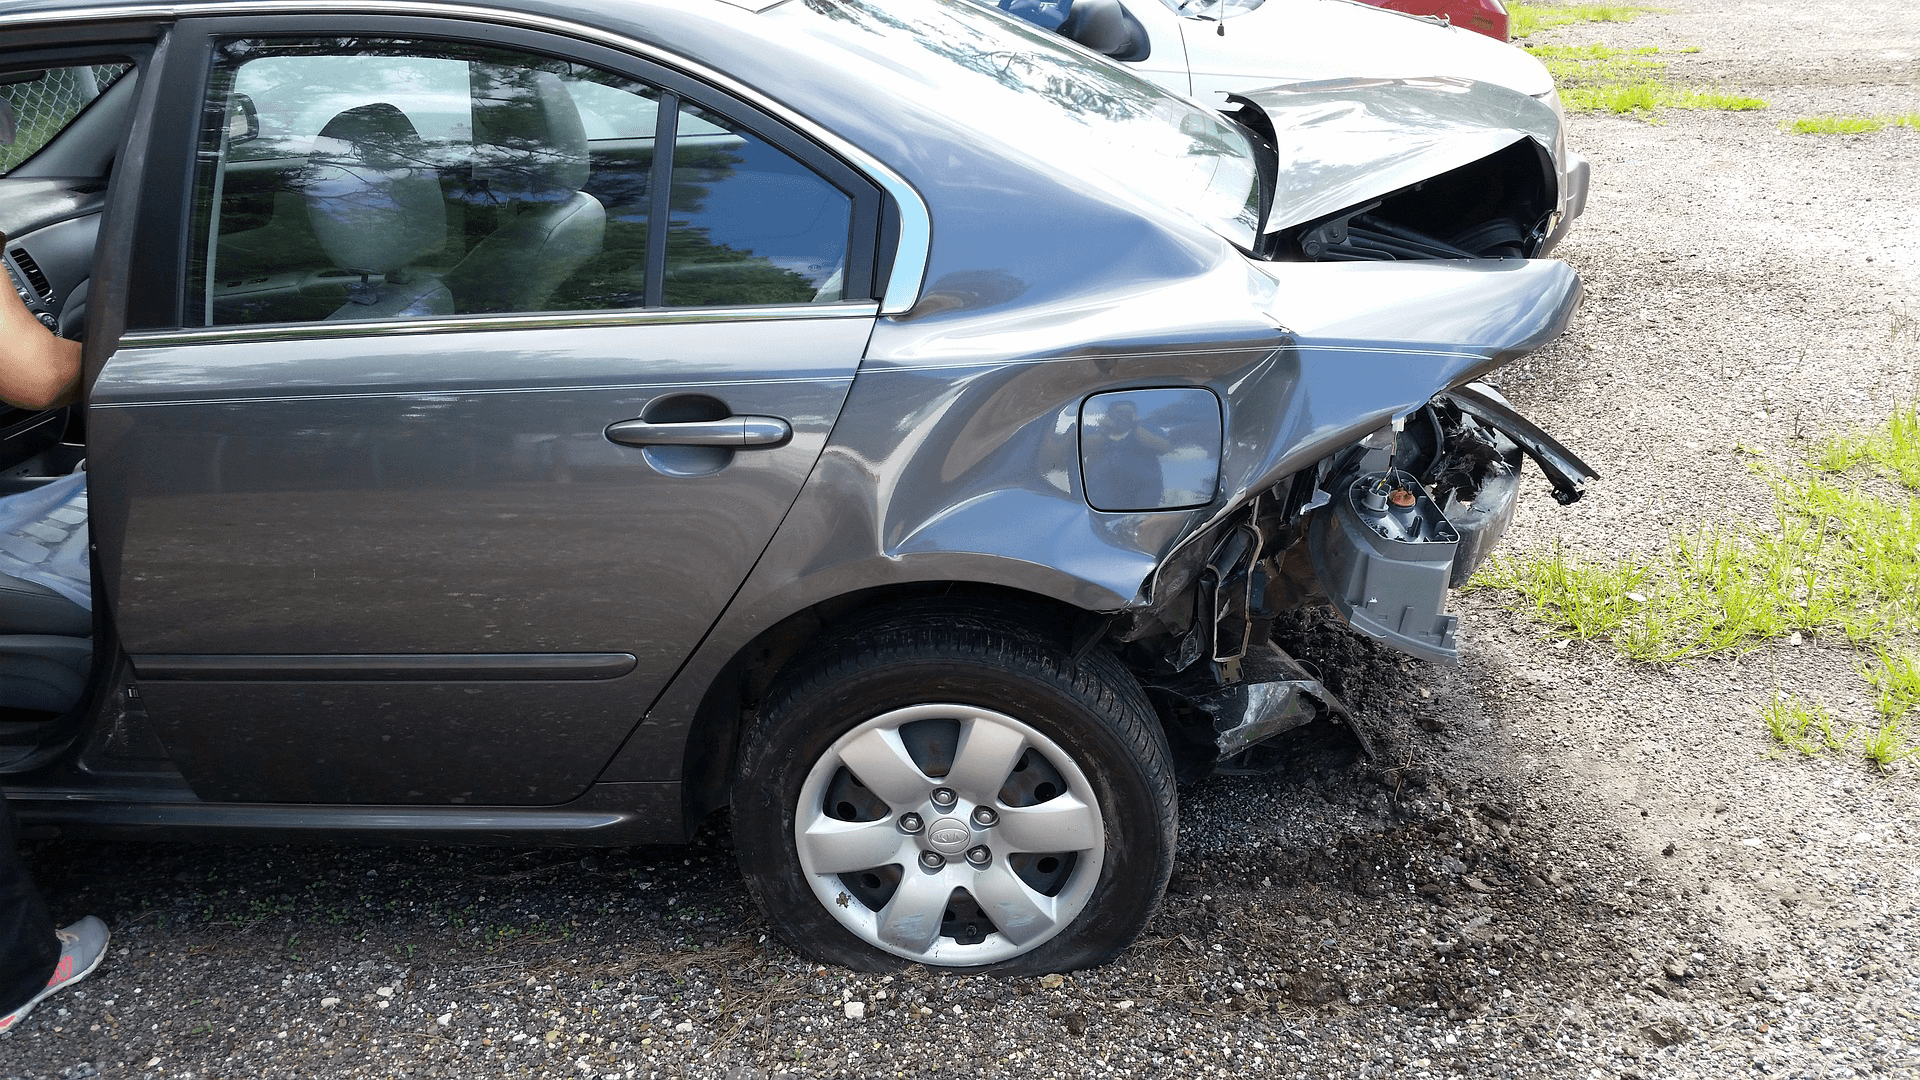 StatMed handles motor vehicle accidents